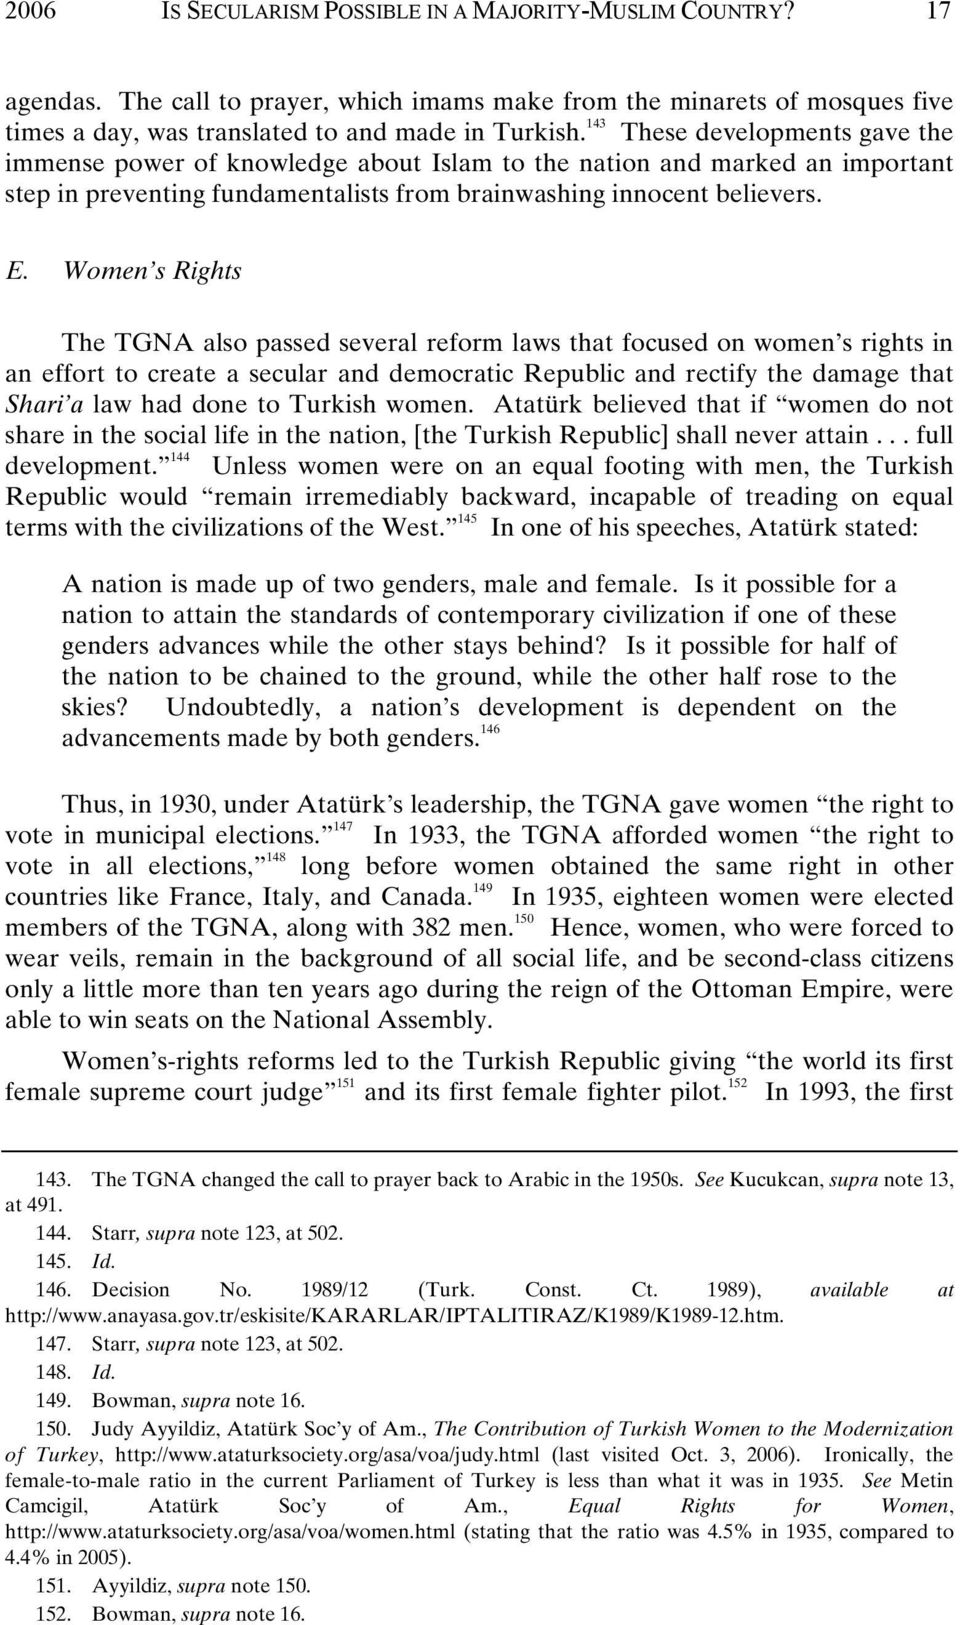 Women s Rights The TGNA also passed several reform laws that focused on women s rights in an effort to create a secular and democratic Republic and rectify the damage that Shari a law had done to